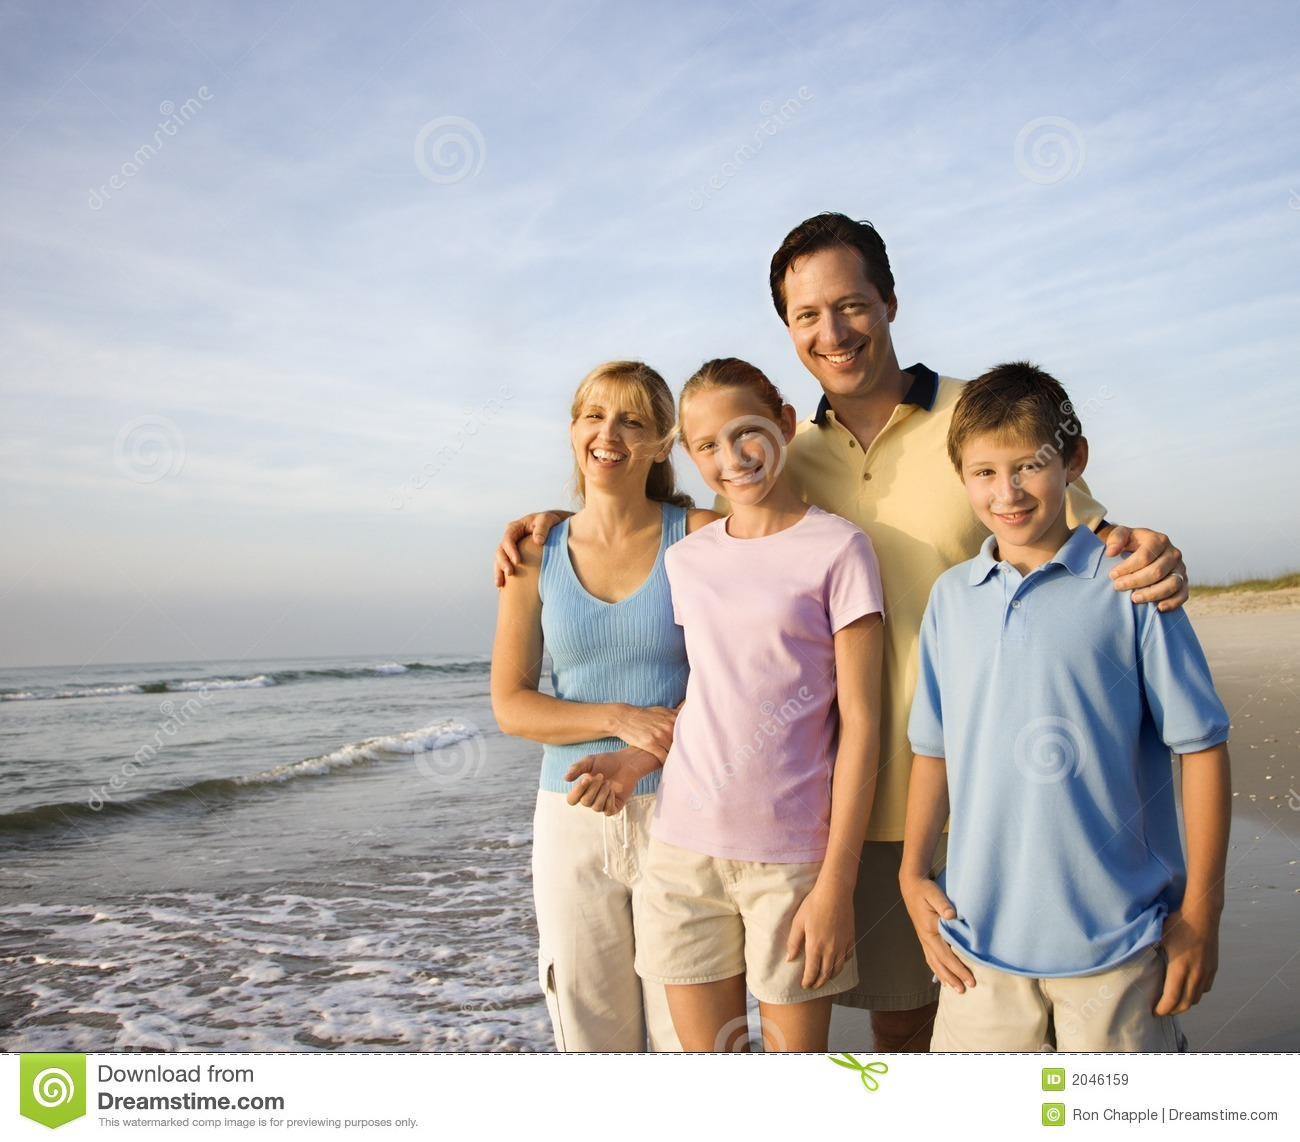 Royalty Free Stock Images Free Smiling family on beach